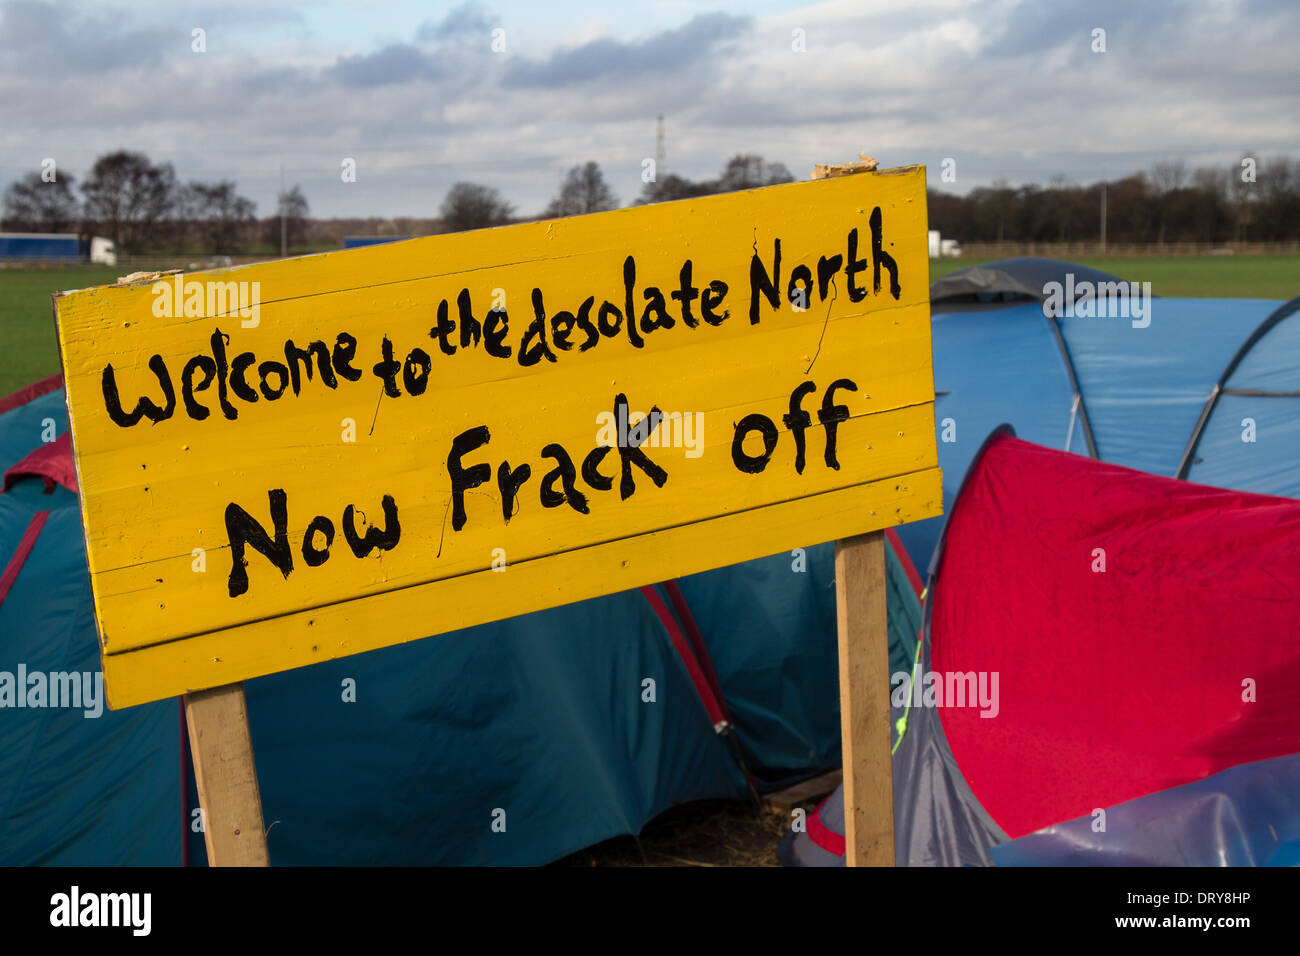 Manchester, Barton Moss, UK. 4th February, 2014. 'Welcome to the desolate North.  Now Frack Off'  Protests at IGAS Drilling Site, Greater Manchester Policing operation at Barton Moss Drilling Site as Cuadrilla, as one of the energy firms hoping to exploit the UK's shale gas resources, announces two new exploration sites in Lancashire. ... to drill and frack at two sites at Roseacre Wood and Little Plumpton. - Stock Image